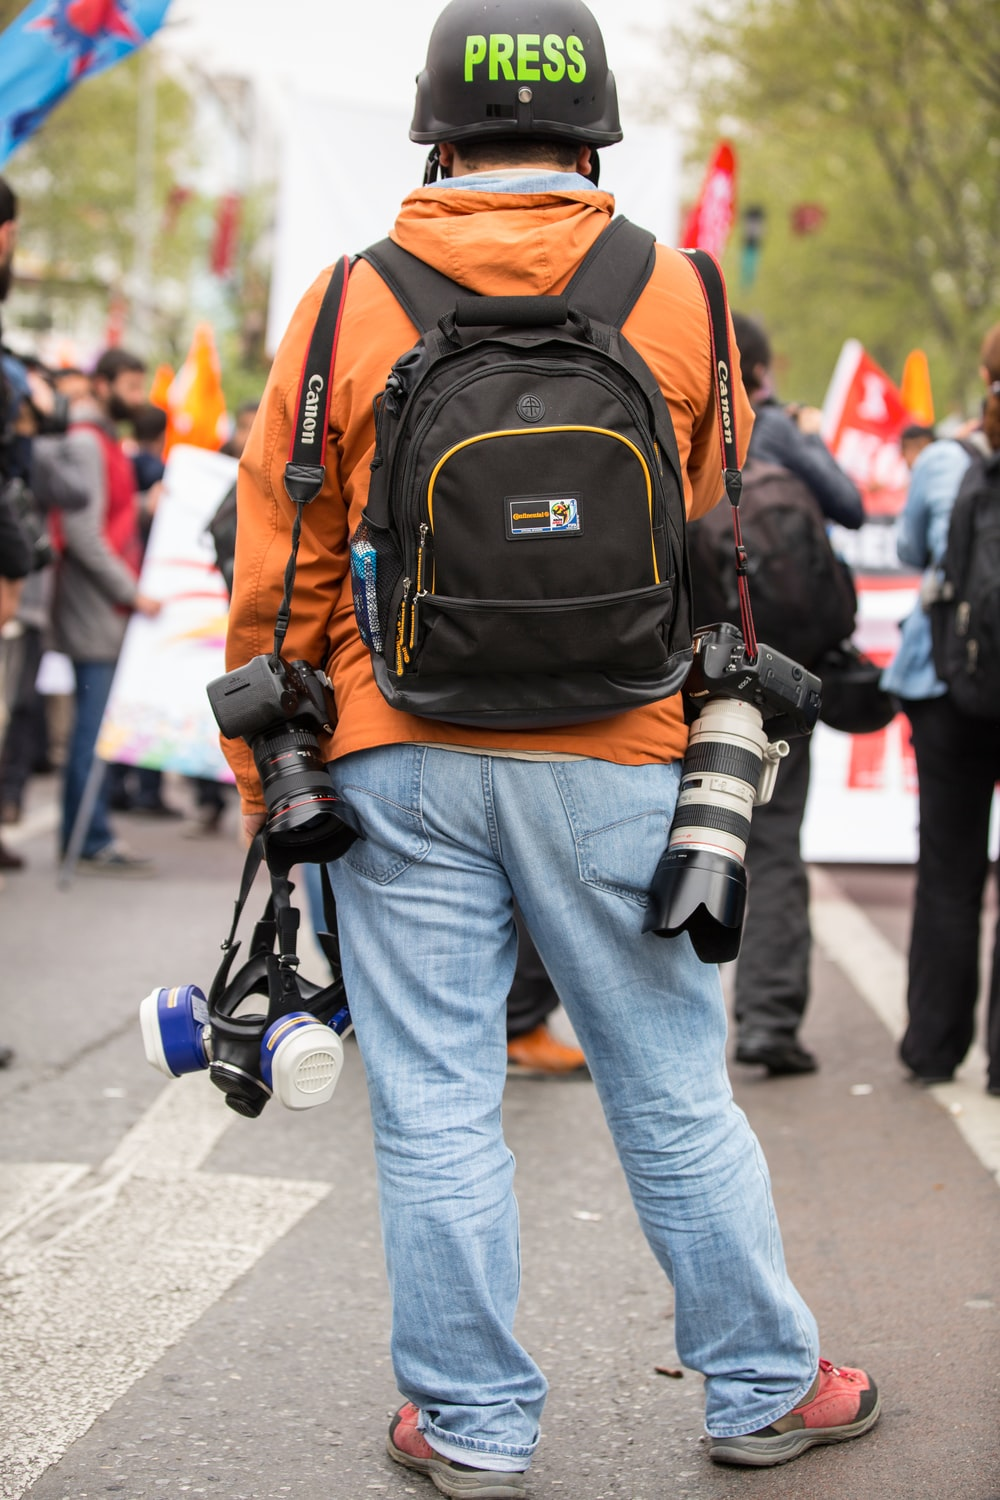 person in blue denim jeans and orange backpack walking on street during daytime